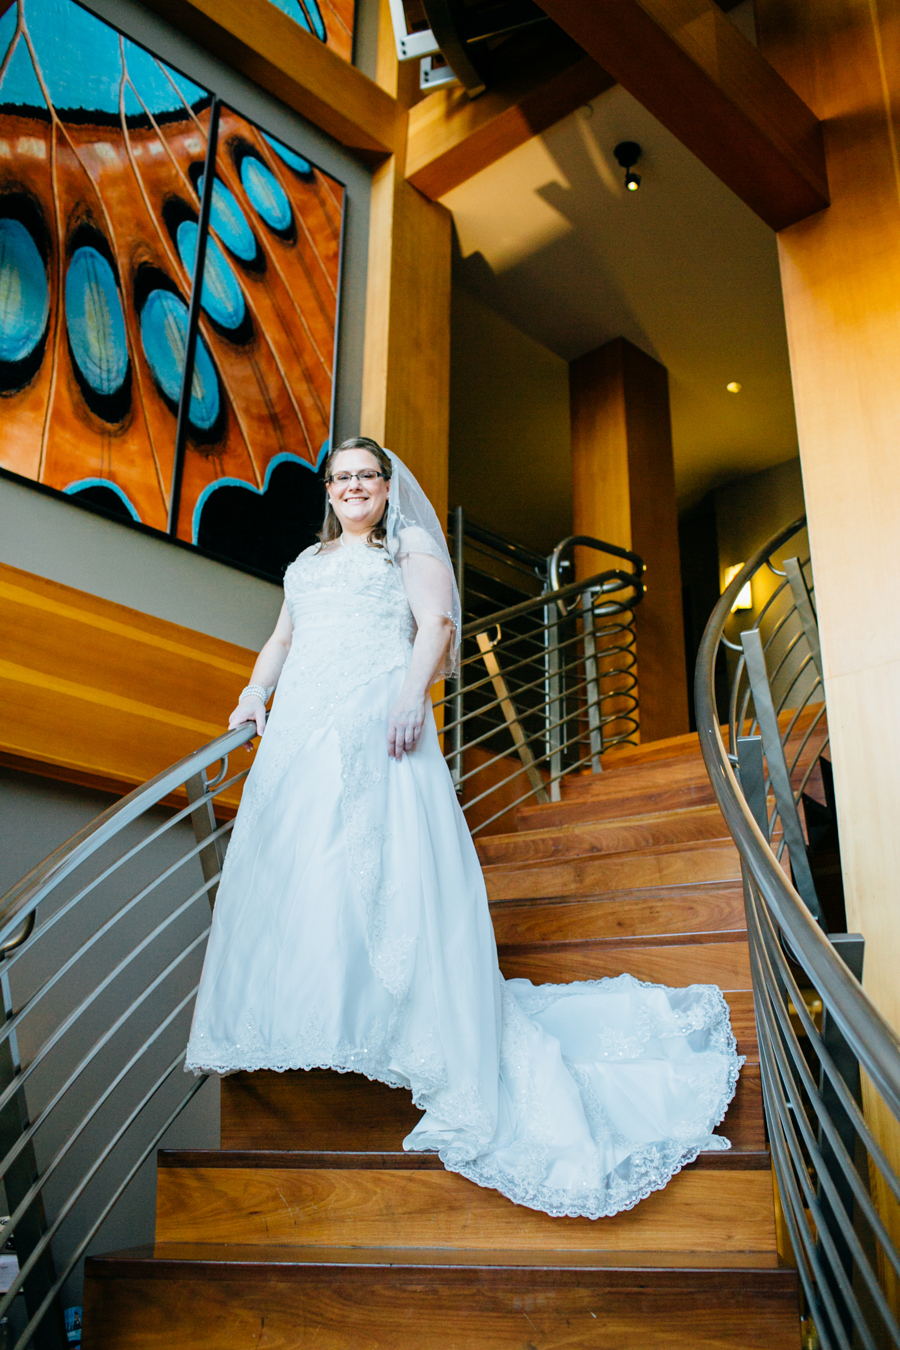 024-bellingham-wedding-photographer-chrysalis-inn-and-spa-elopement-katheryn-moran-photography.jpg